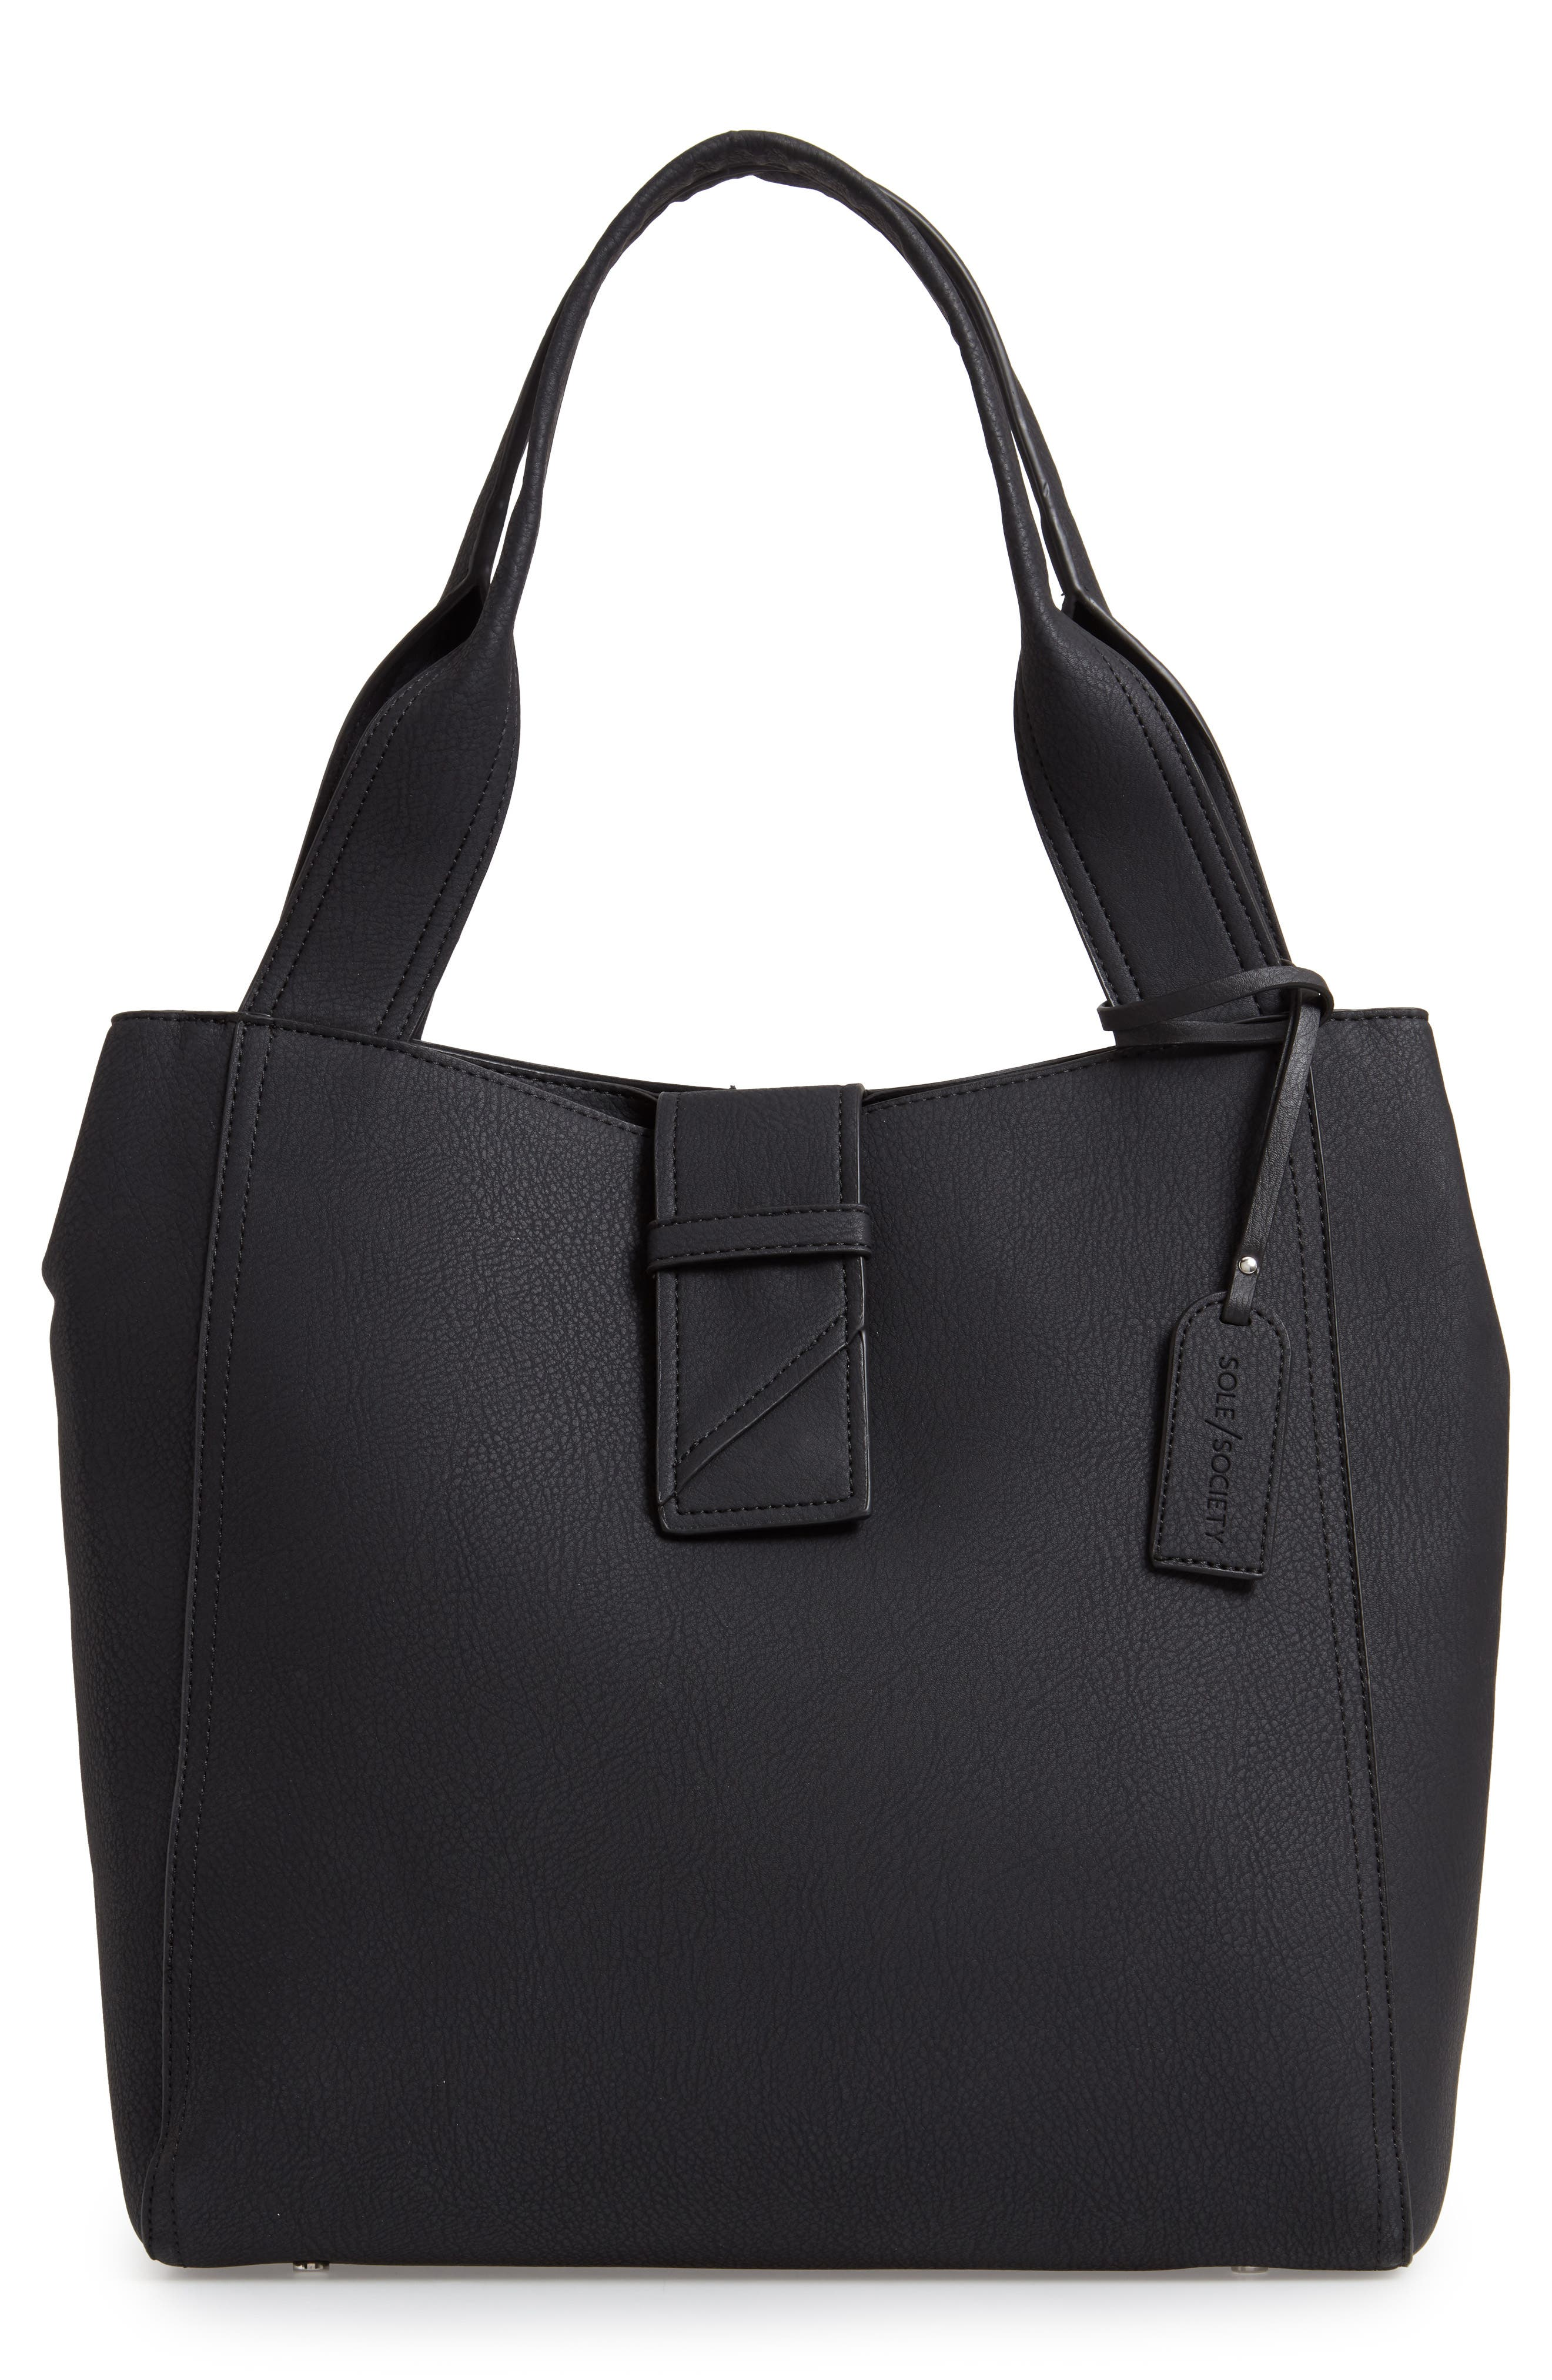 SOLE SOCIETY Valah Faux Leather Tote, Main, color, BLACK